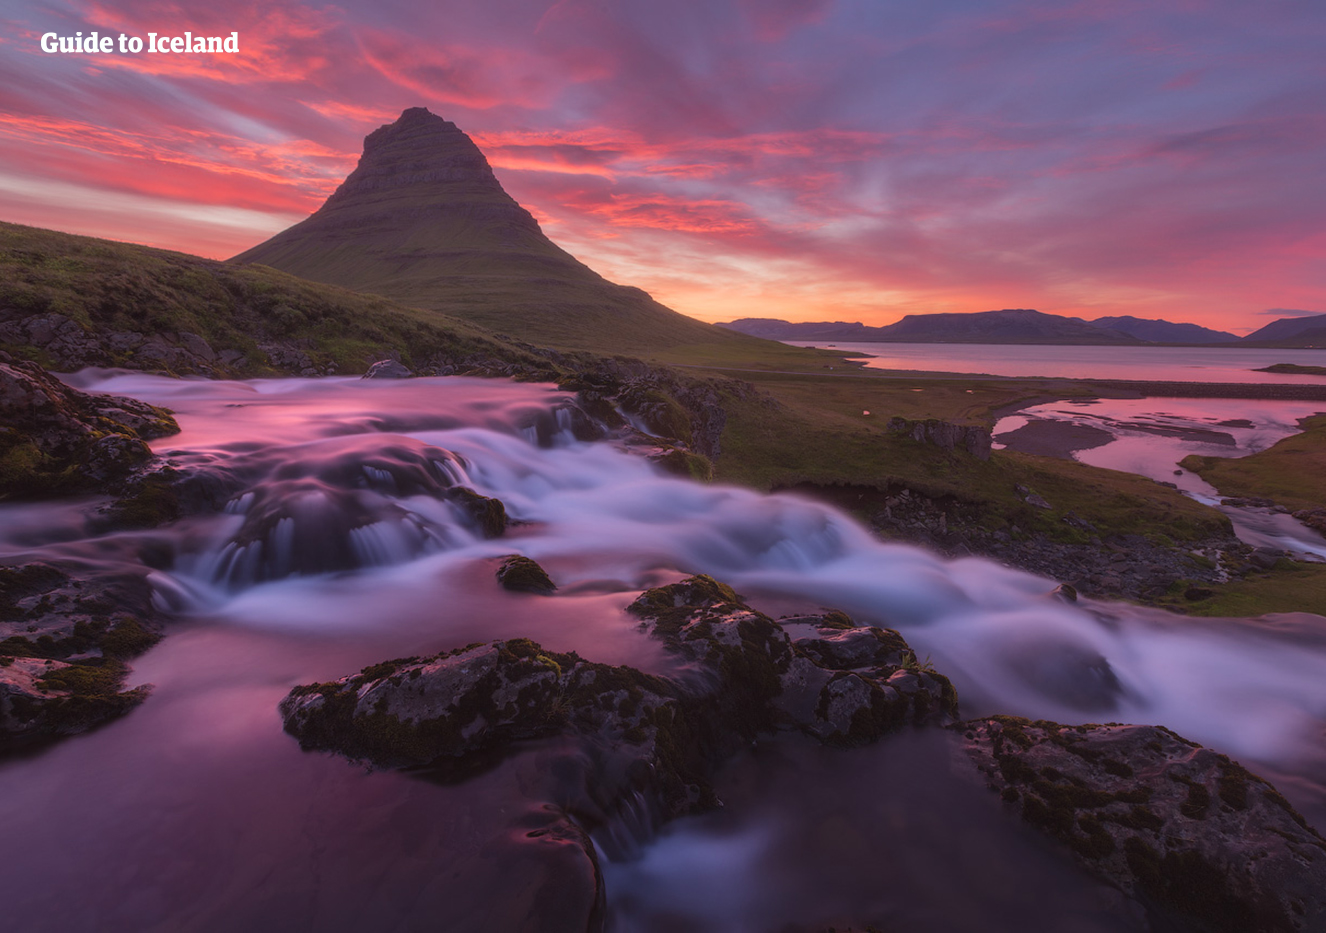 Kirkjufell and the water Kirkjufellsfoss are two magical attractions on Iceland's Snaefellsnes Peninsula.